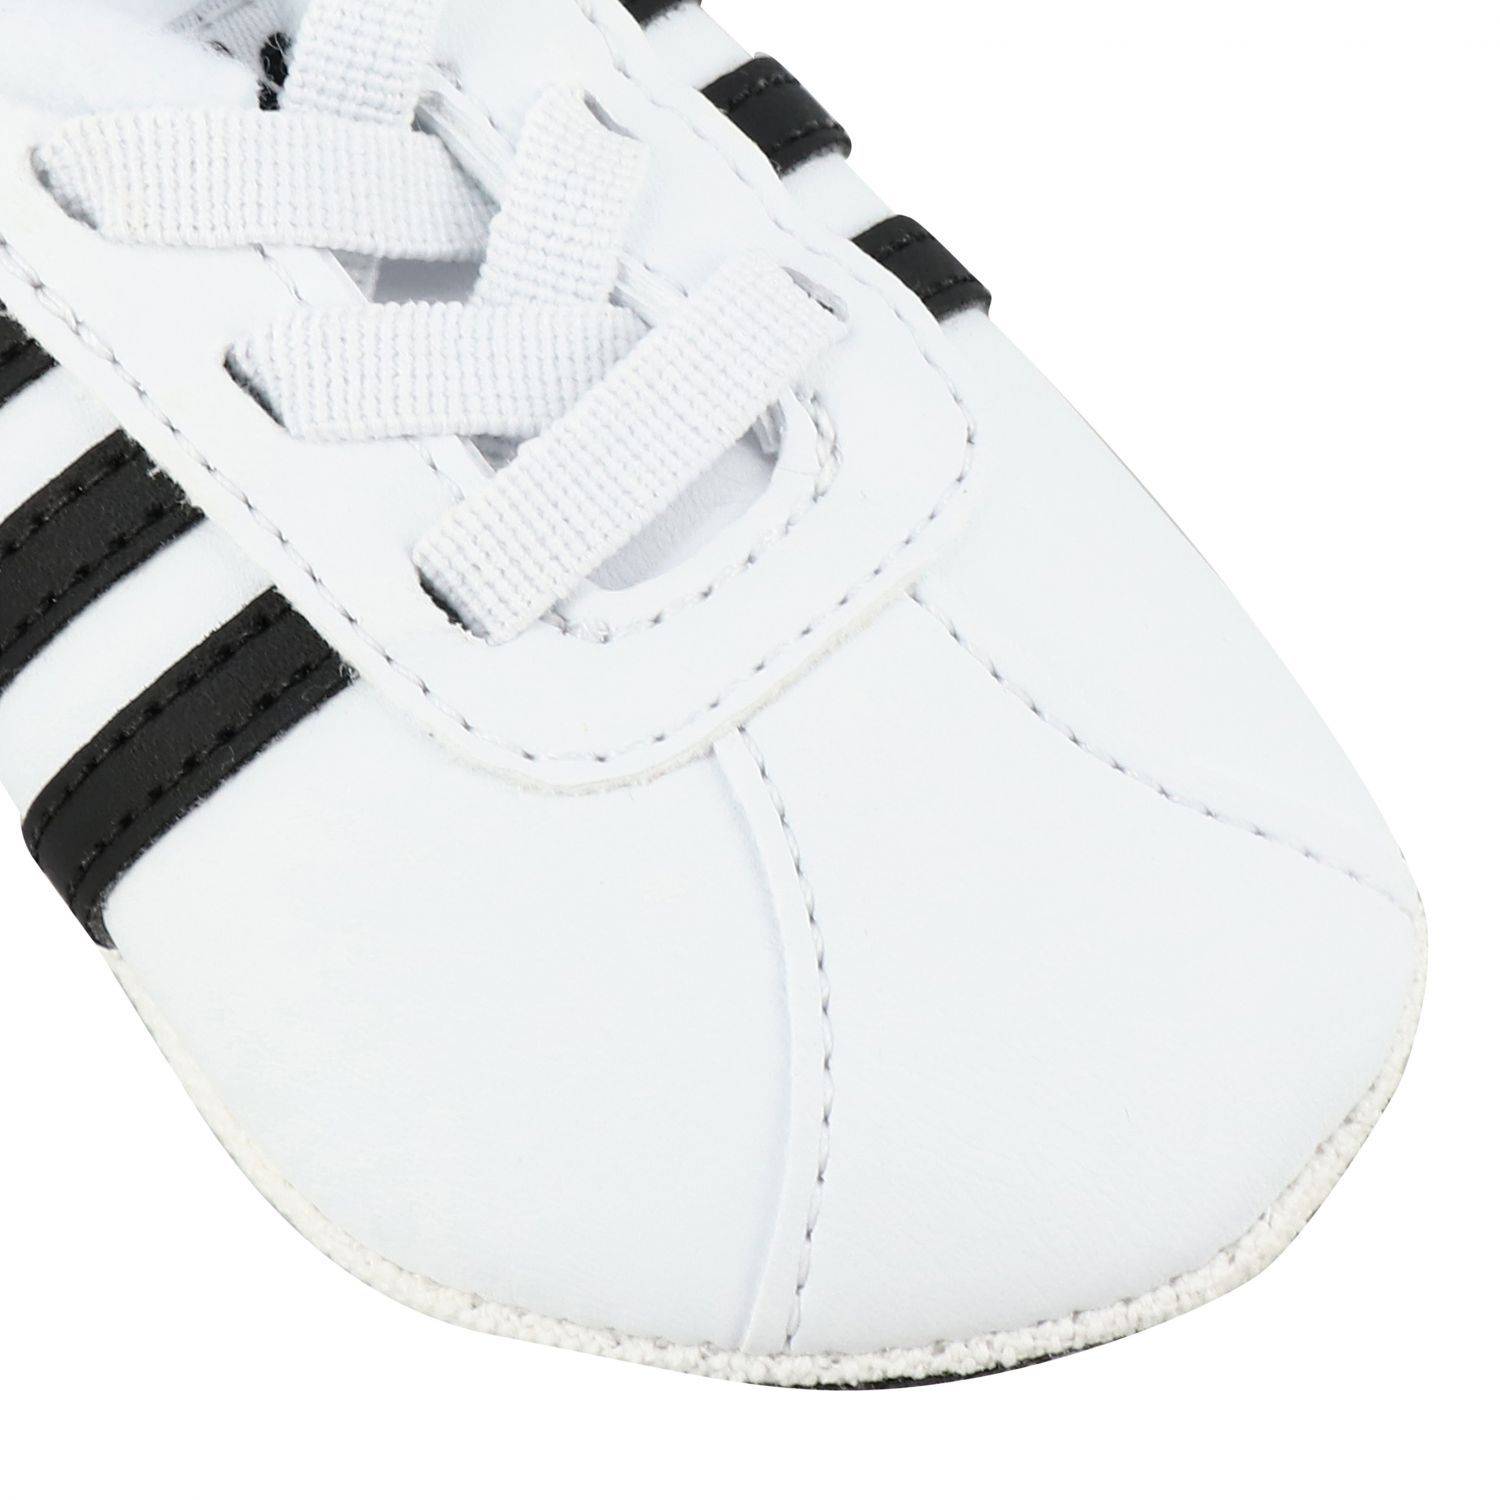 Zapatos Adidas Originals: Zapatos niños Adidas Originals blanco 4